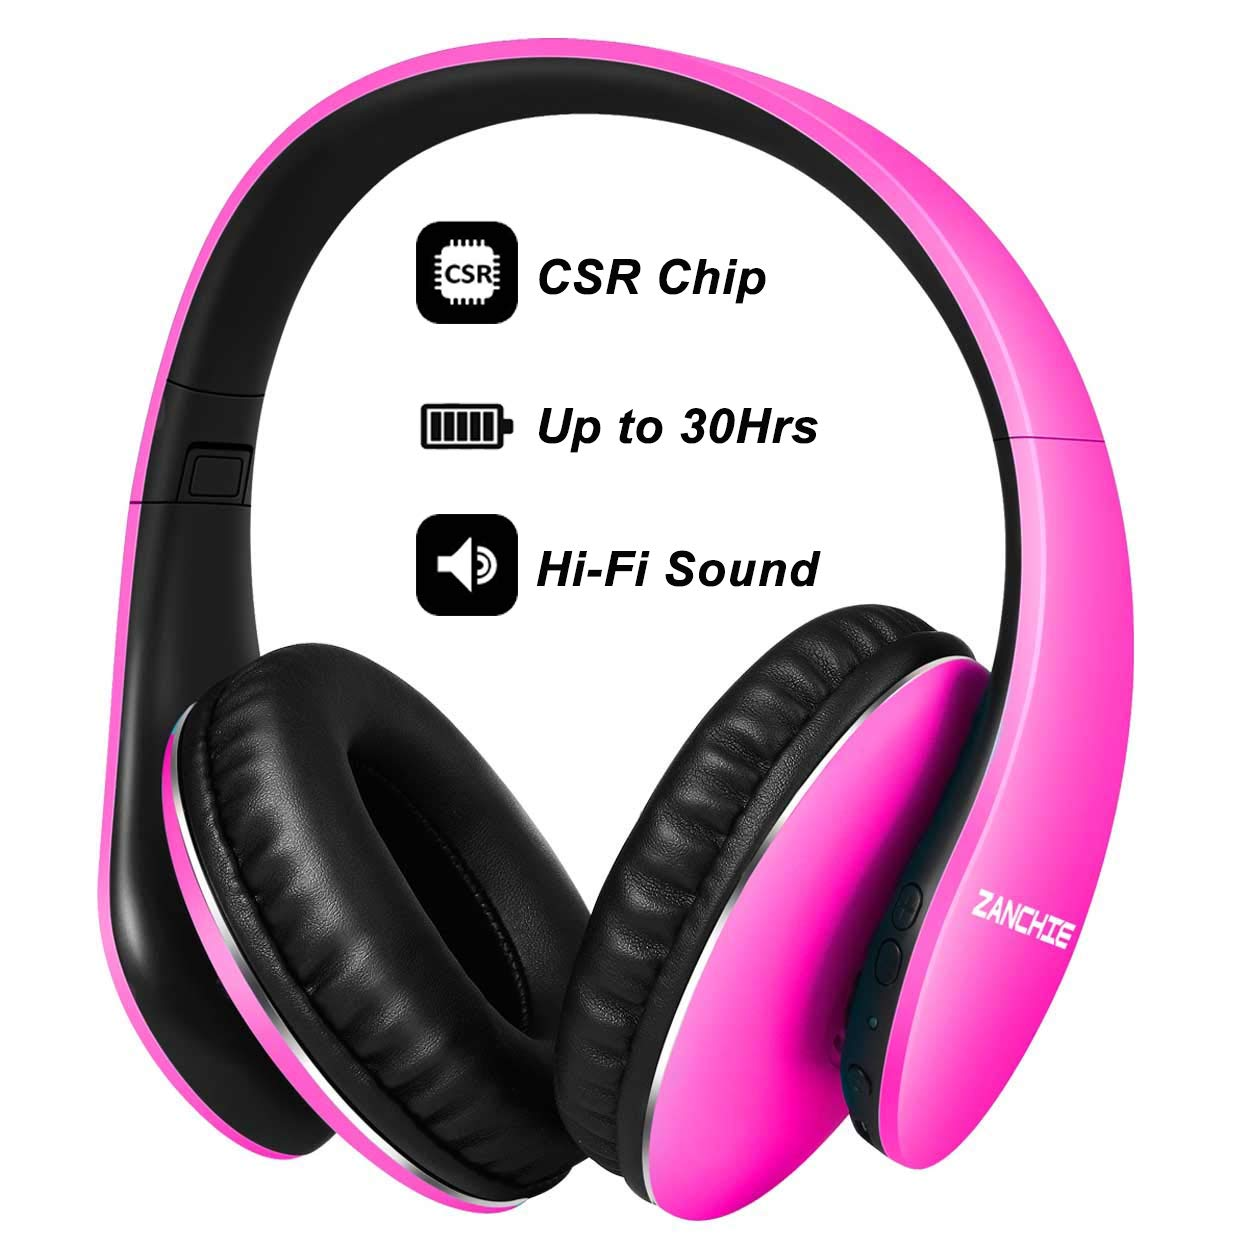 Bluetooth Headphones Over Ear, Hi Fi Stereo Wireless Headset, Foldable Soft Memory-Protein Earmuffs, 30Hrs Playtime, w/Built-in Mic and Wired Mode for Cell Phones PC TV Girls Women